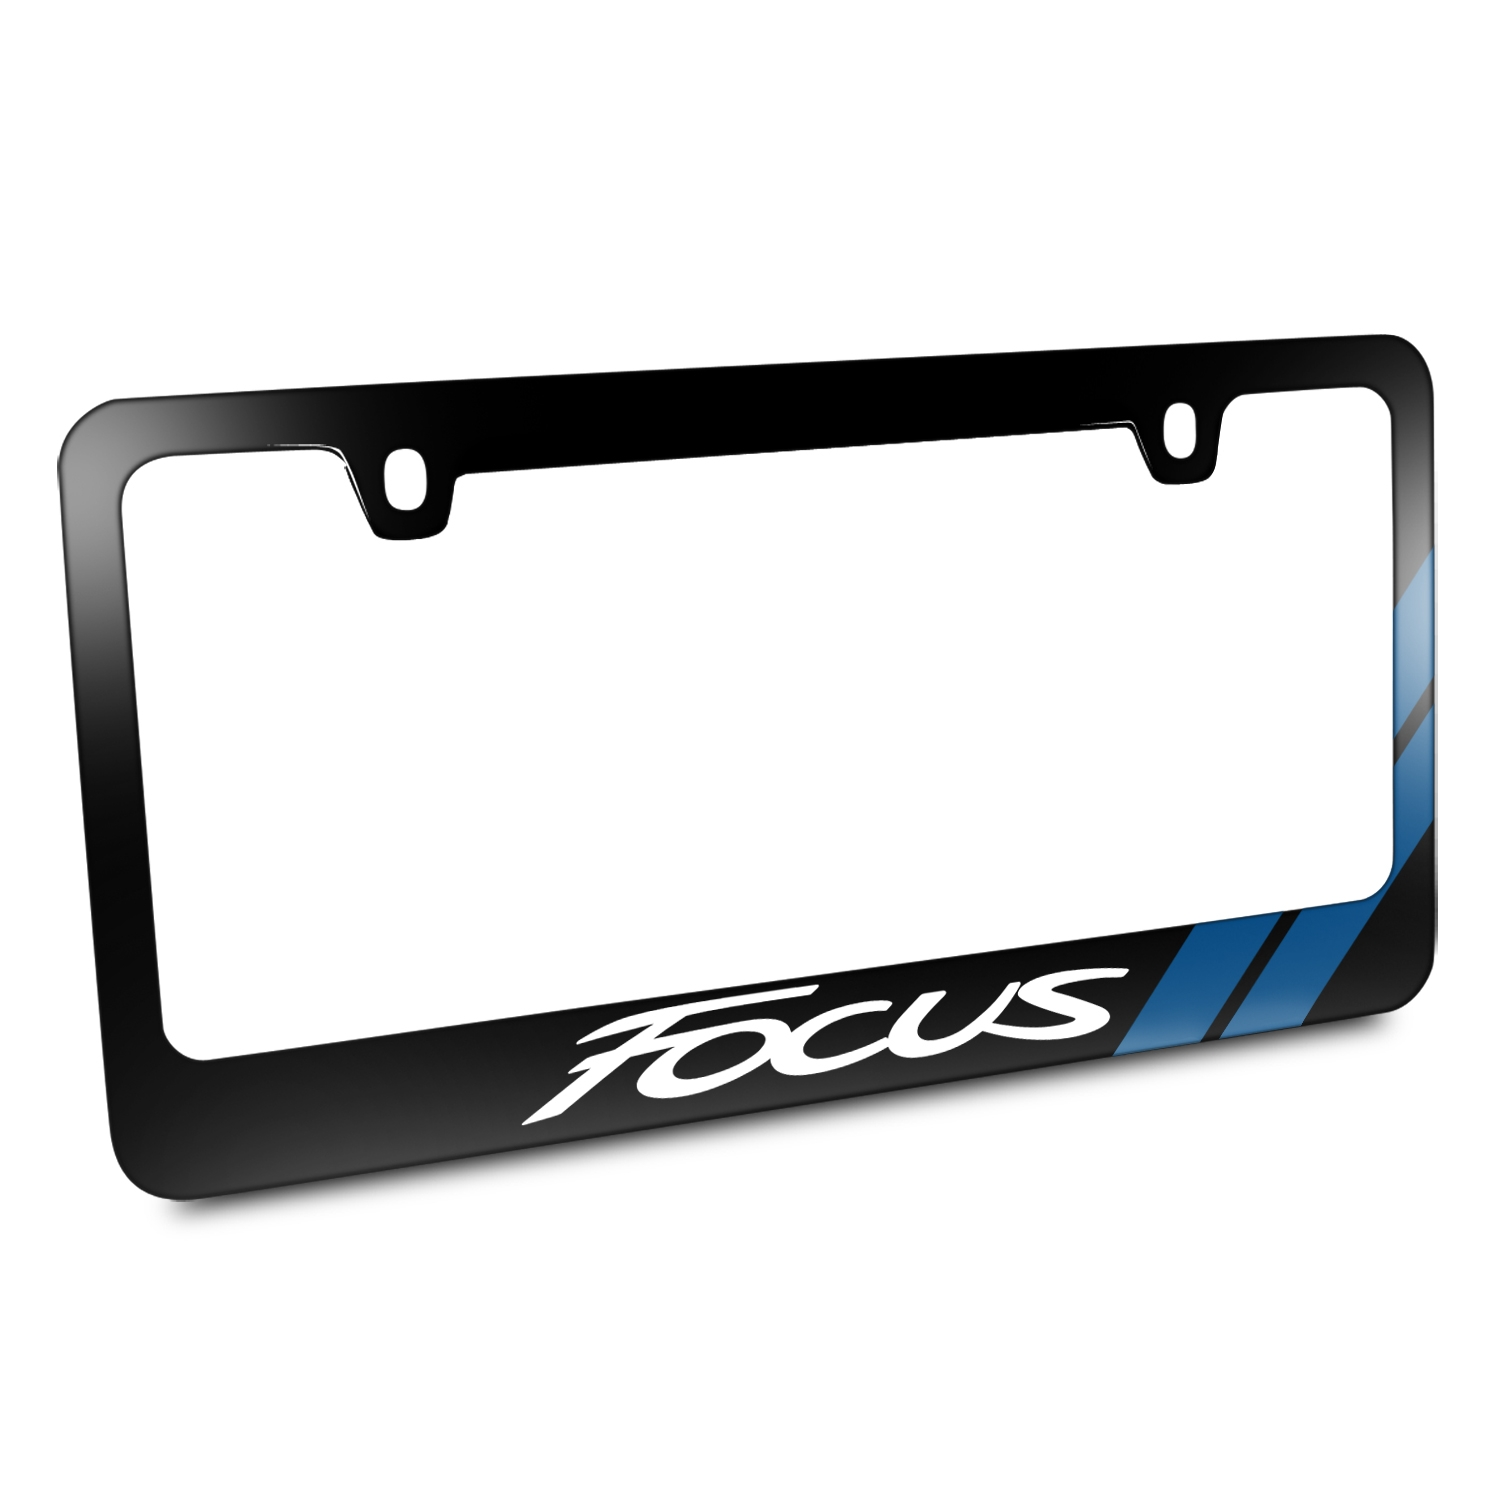 Ford Focus Blue Sports Stripe Black Metal License Plate Frame